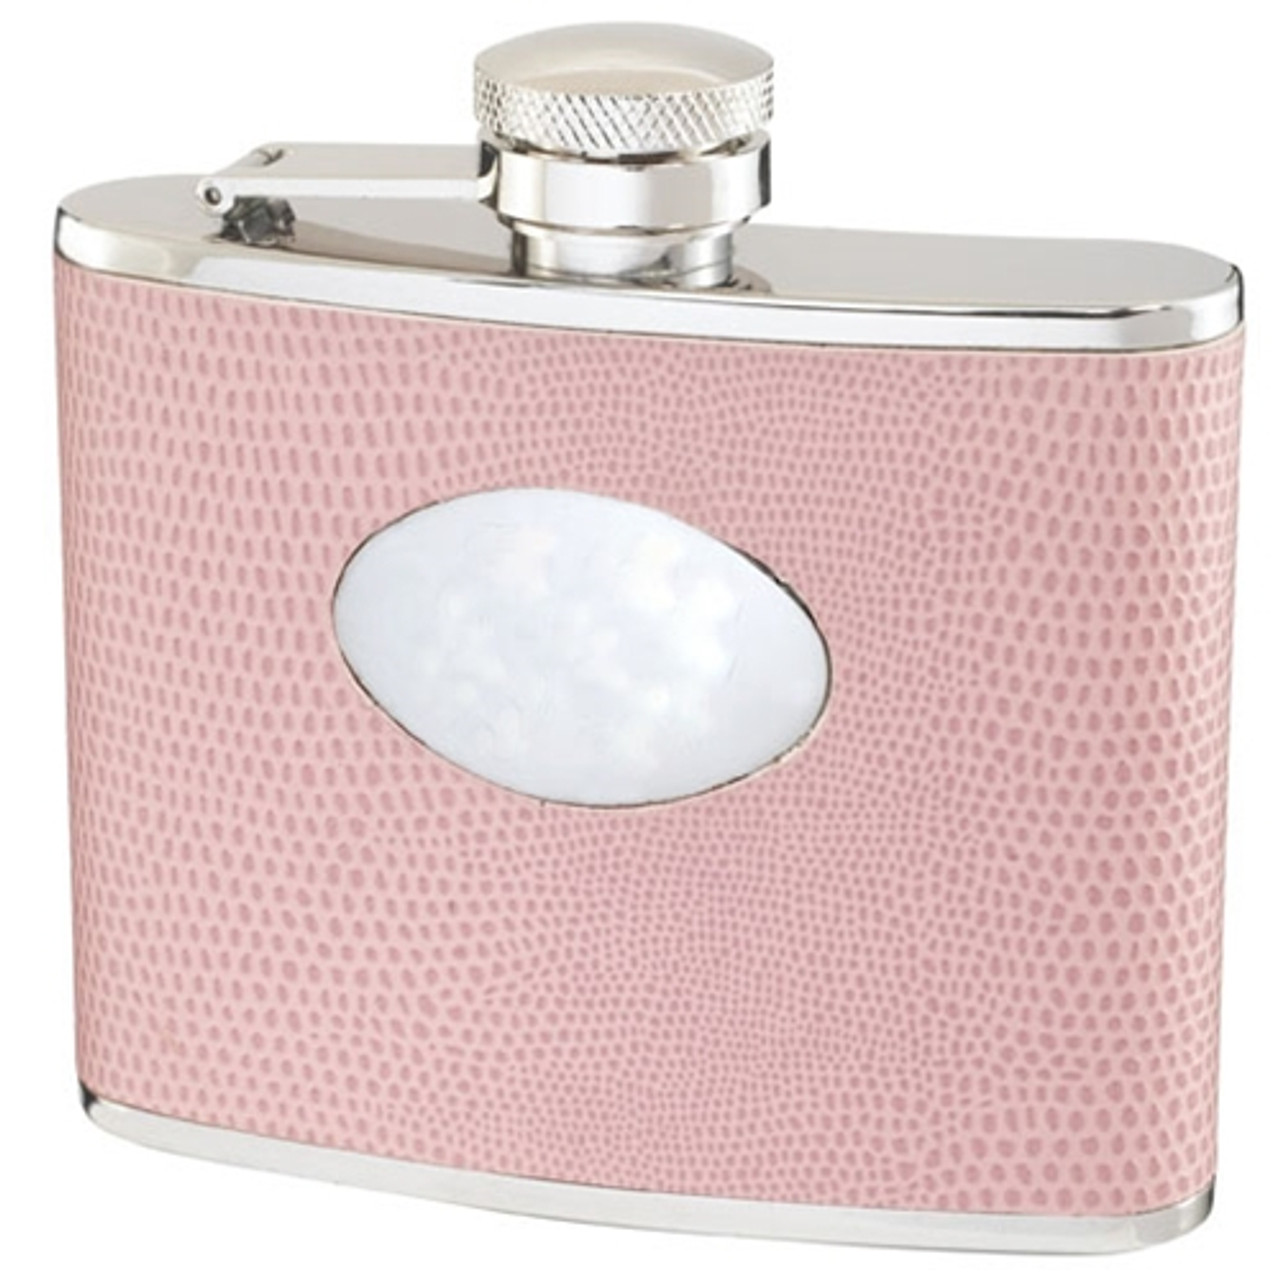 Visol Aruba Light Pink Snakeskin Hip Flask 4oz Vf1185 Visol